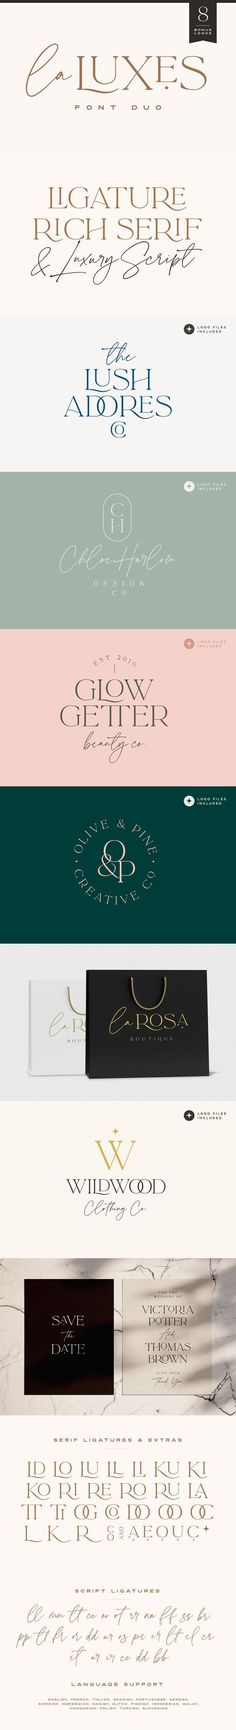 Indulge yourself in a luxurious typography pairing with La Luxes; a classic font duo consisting of an elegant Script & ligature-rich Serif. Also included in this product are 8 bonus logo templates… Hand Lettering Fonts, Typography Fonts, Typeface Font, Cursive Fonts, Typography Design, Vintage Fonts, Vintage Typography, Branding Design, Logo Design